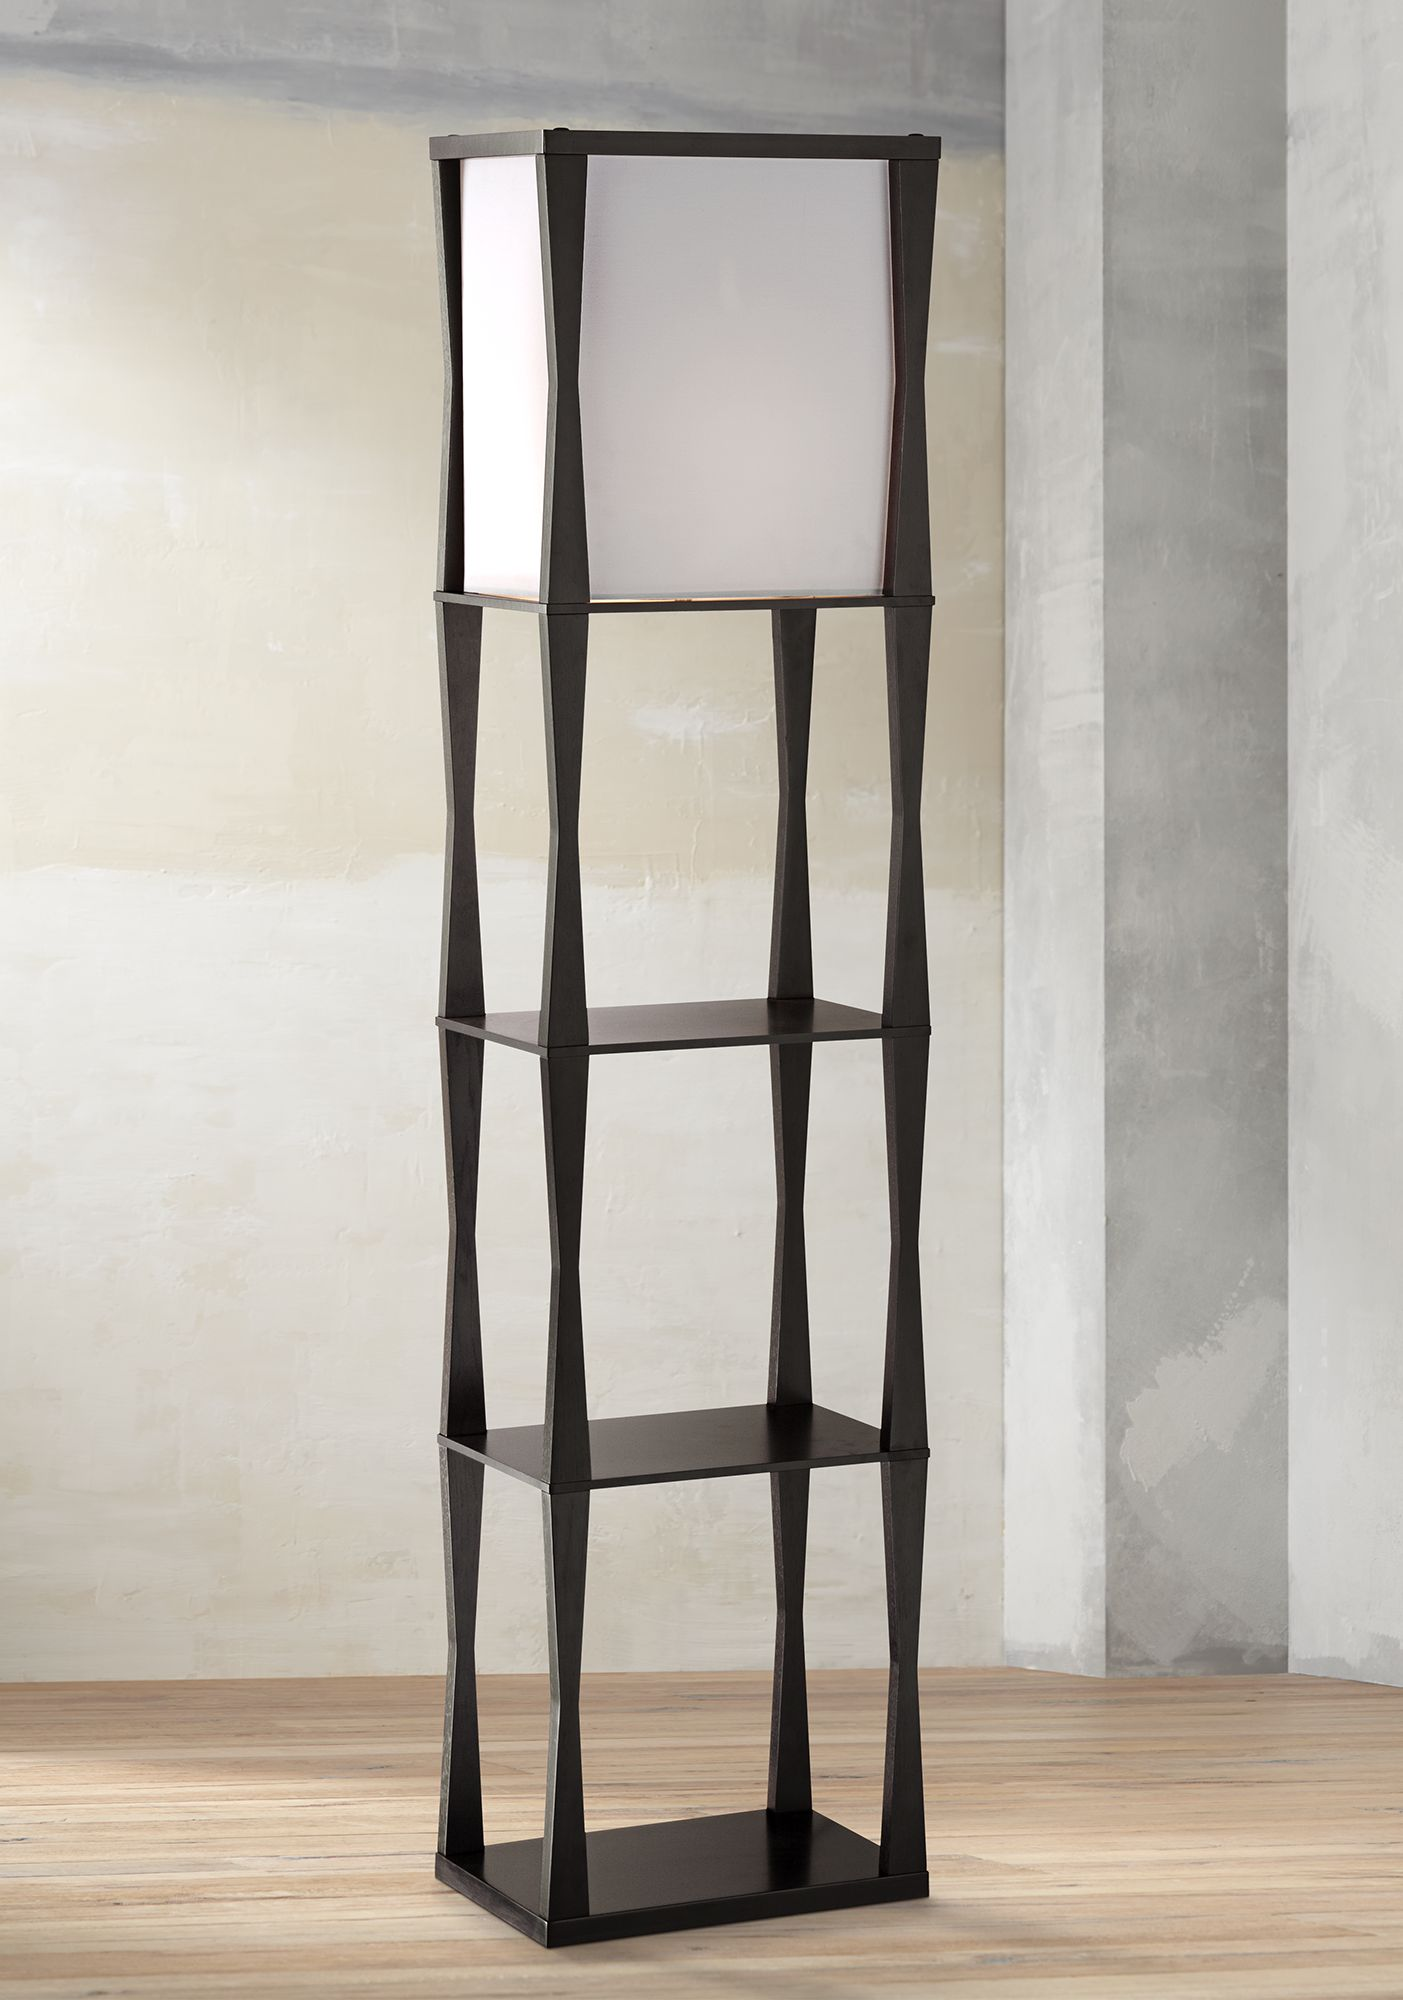 Haiku Etagere Floor Lamp - #2G189 | Lamps Plus